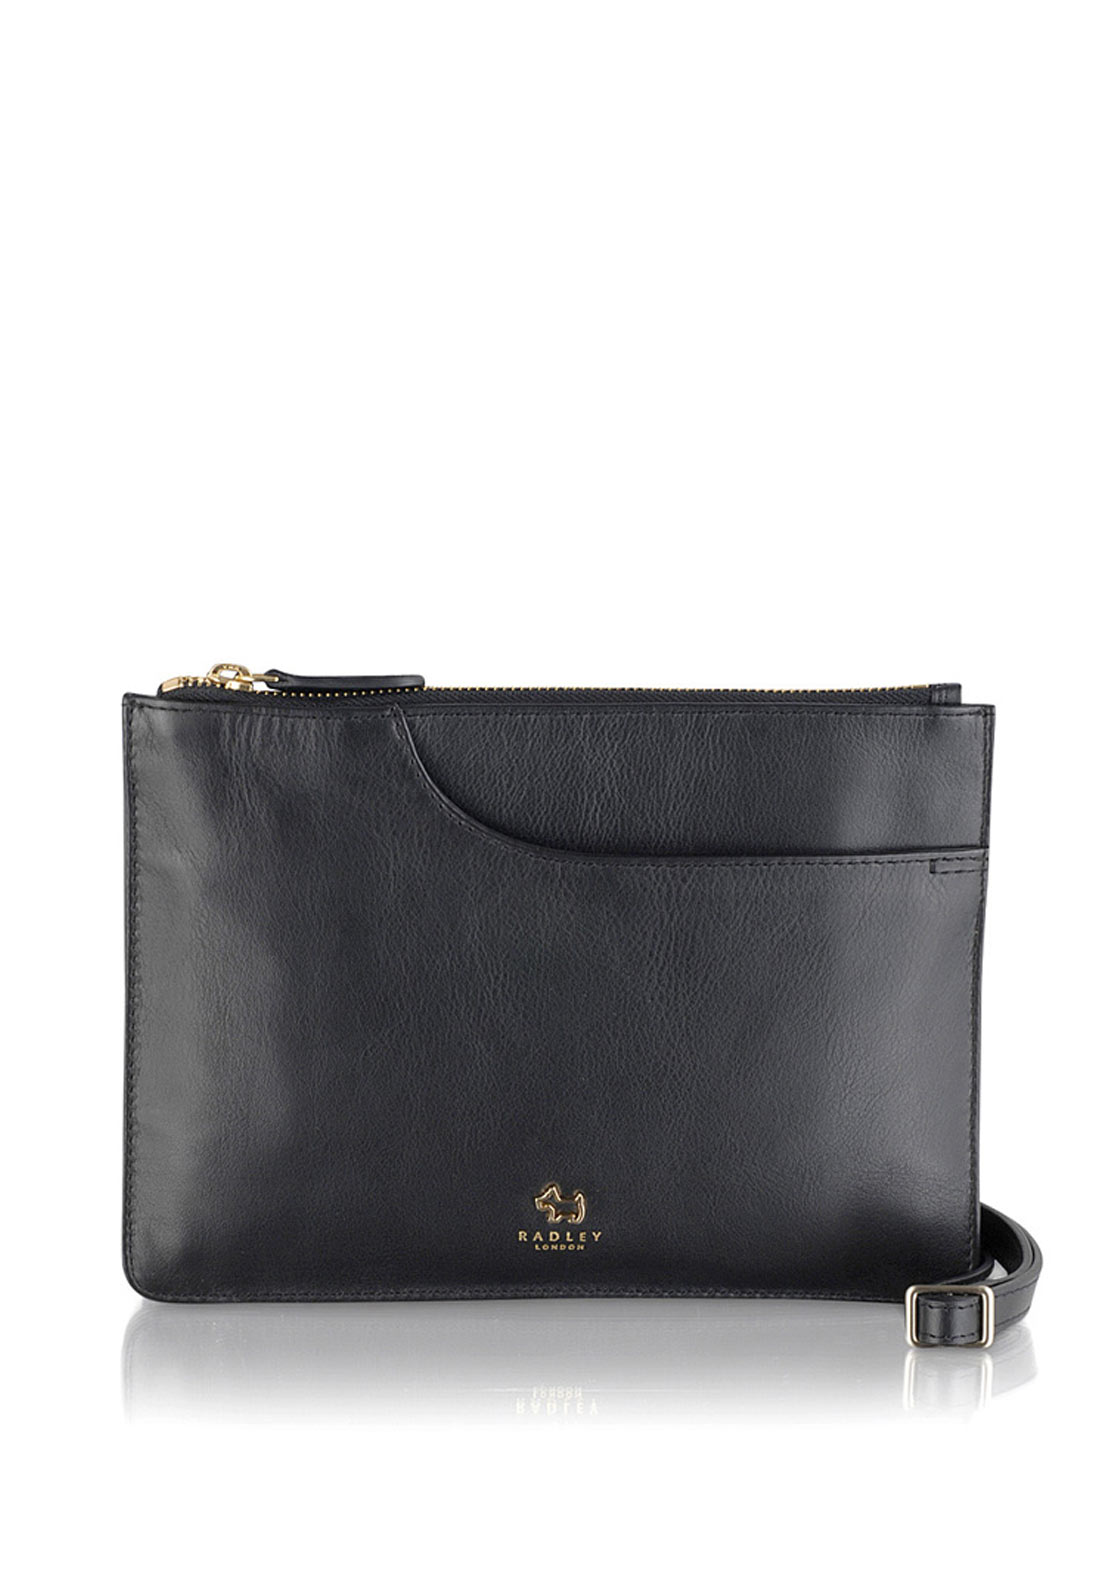 Radley Zip Top Tote Bag, Black